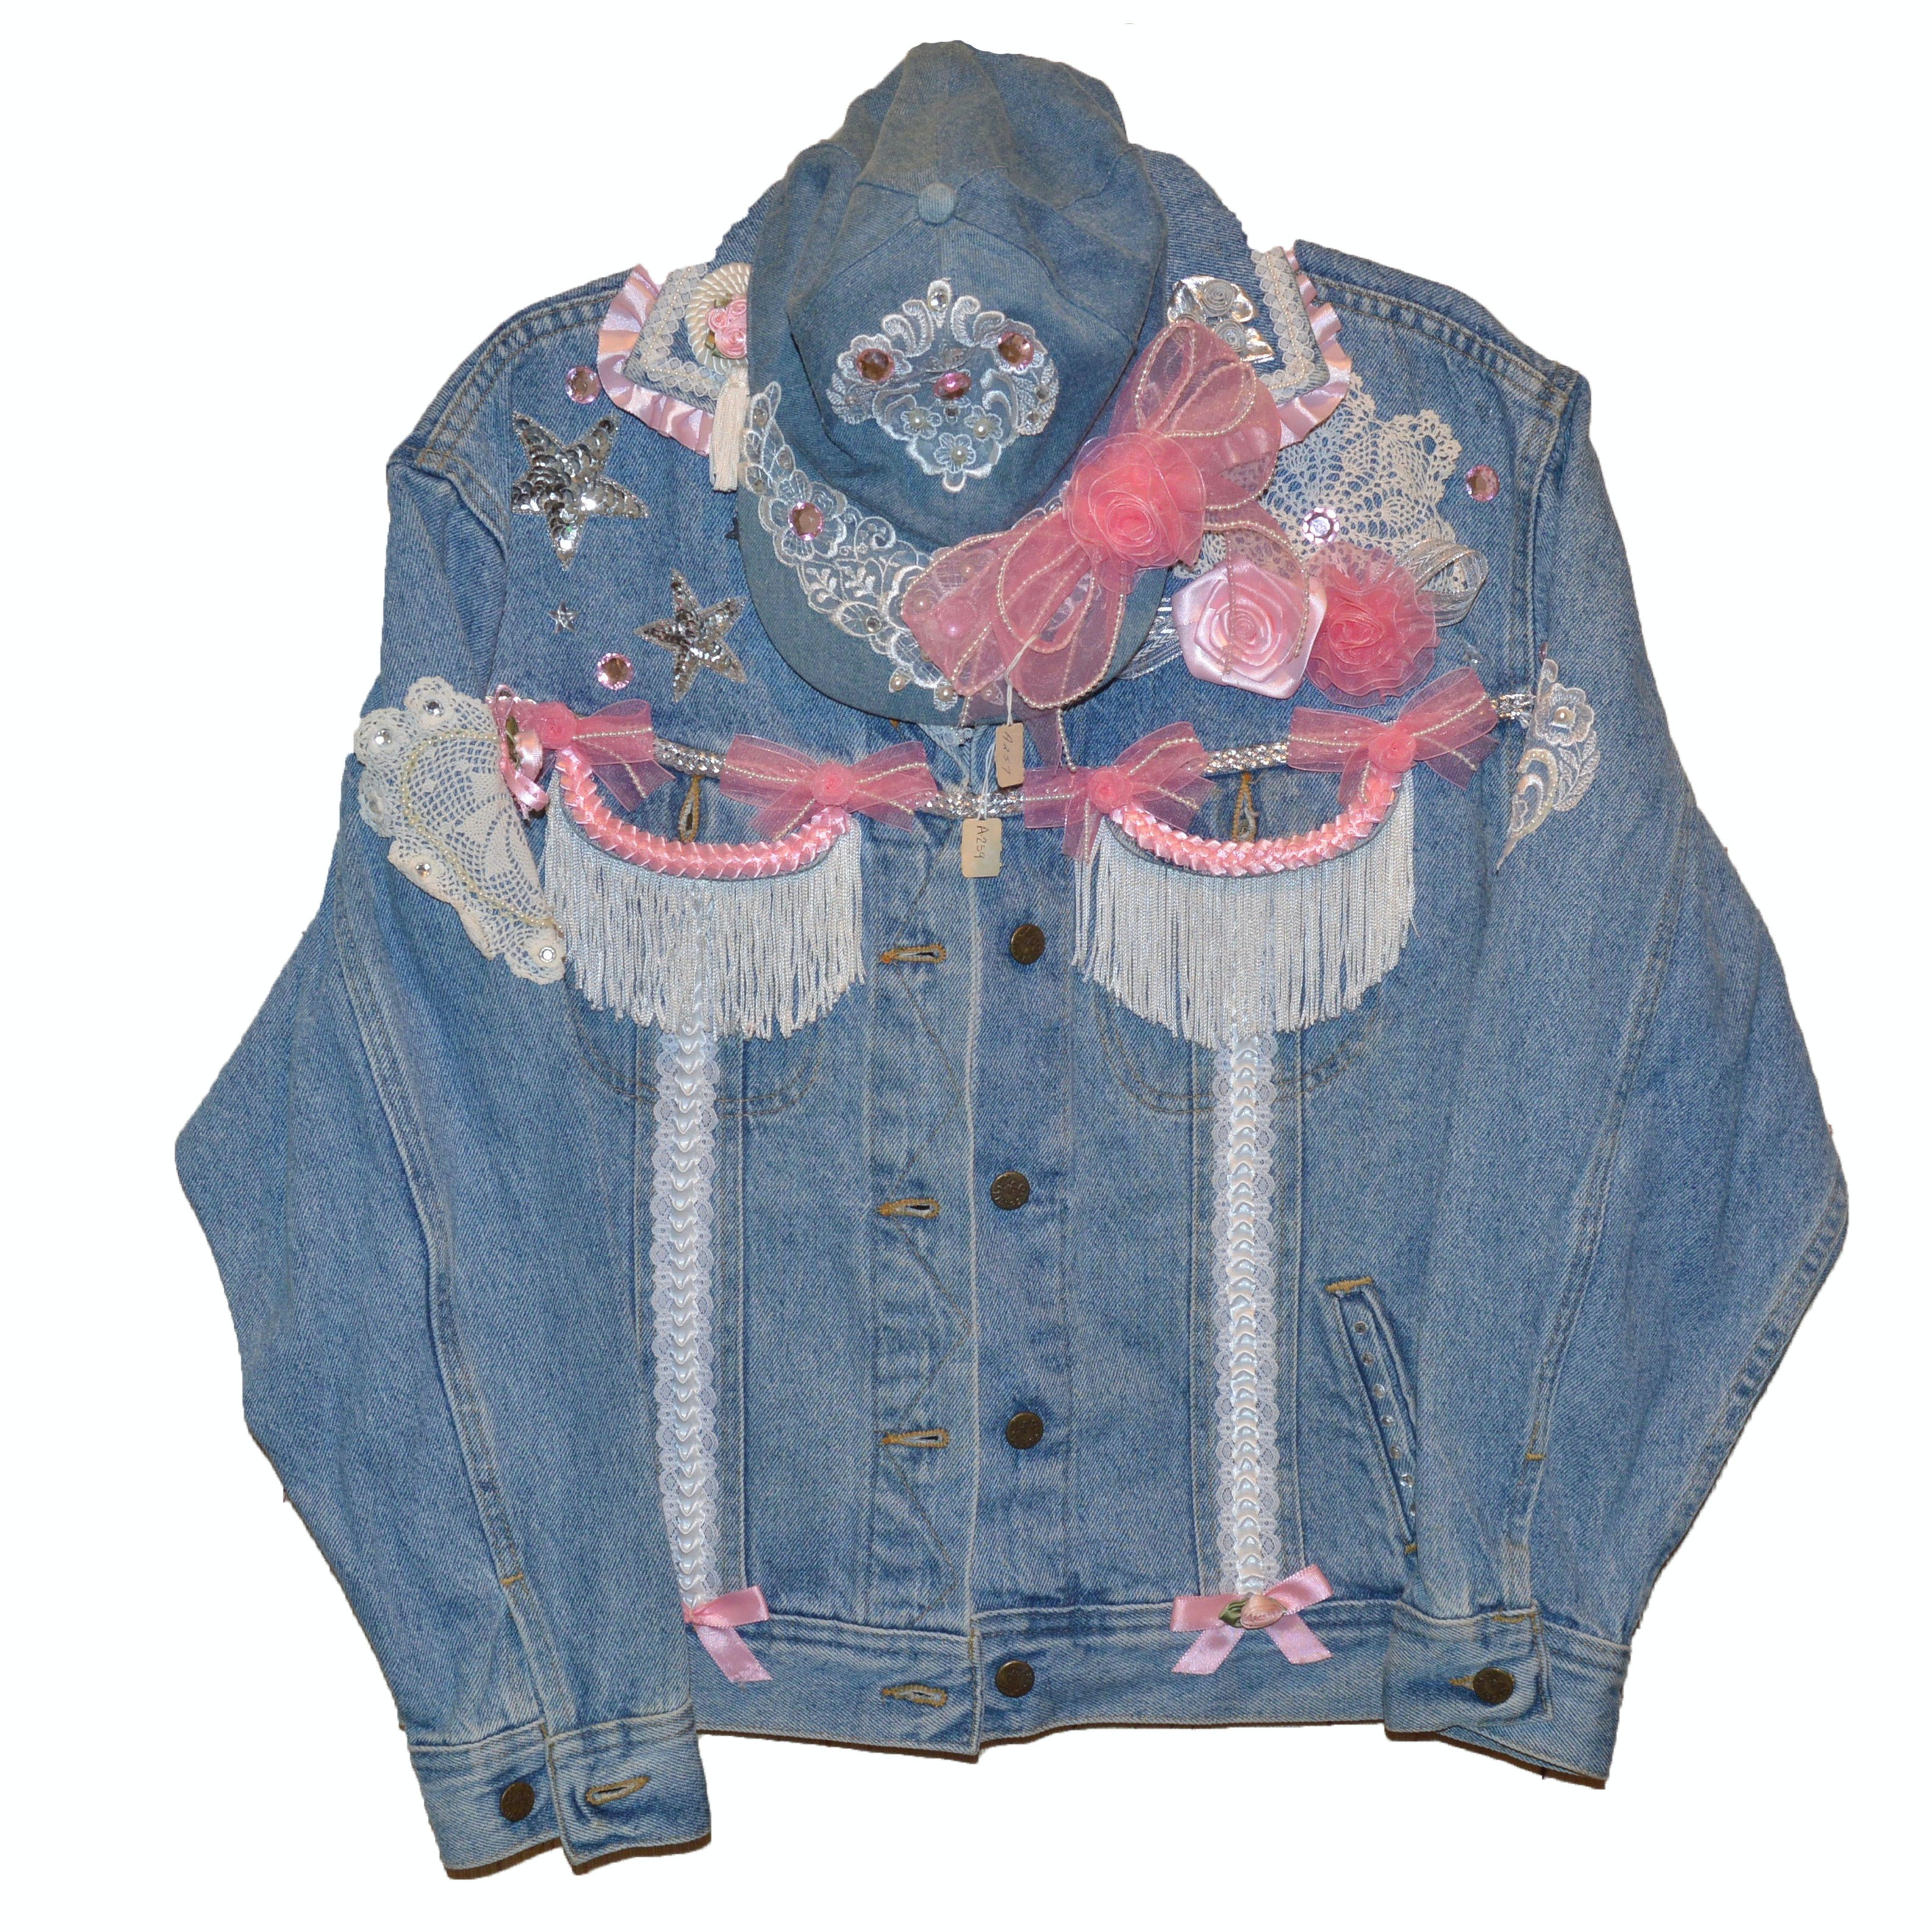 Vintage Denim Jacket and Cap with Hand-Sewn Details